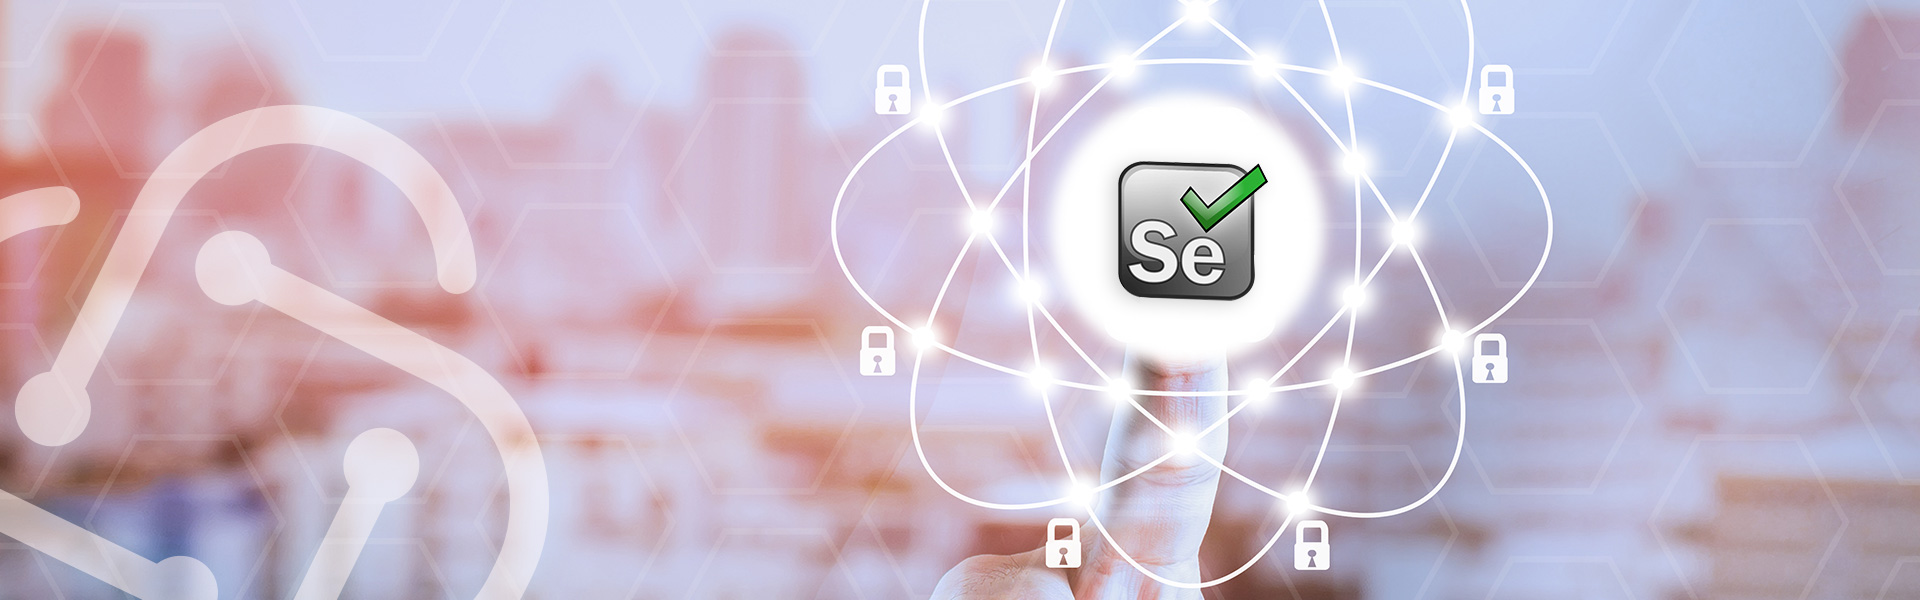 Test Automation in Selenium Using Page Object Model and Page